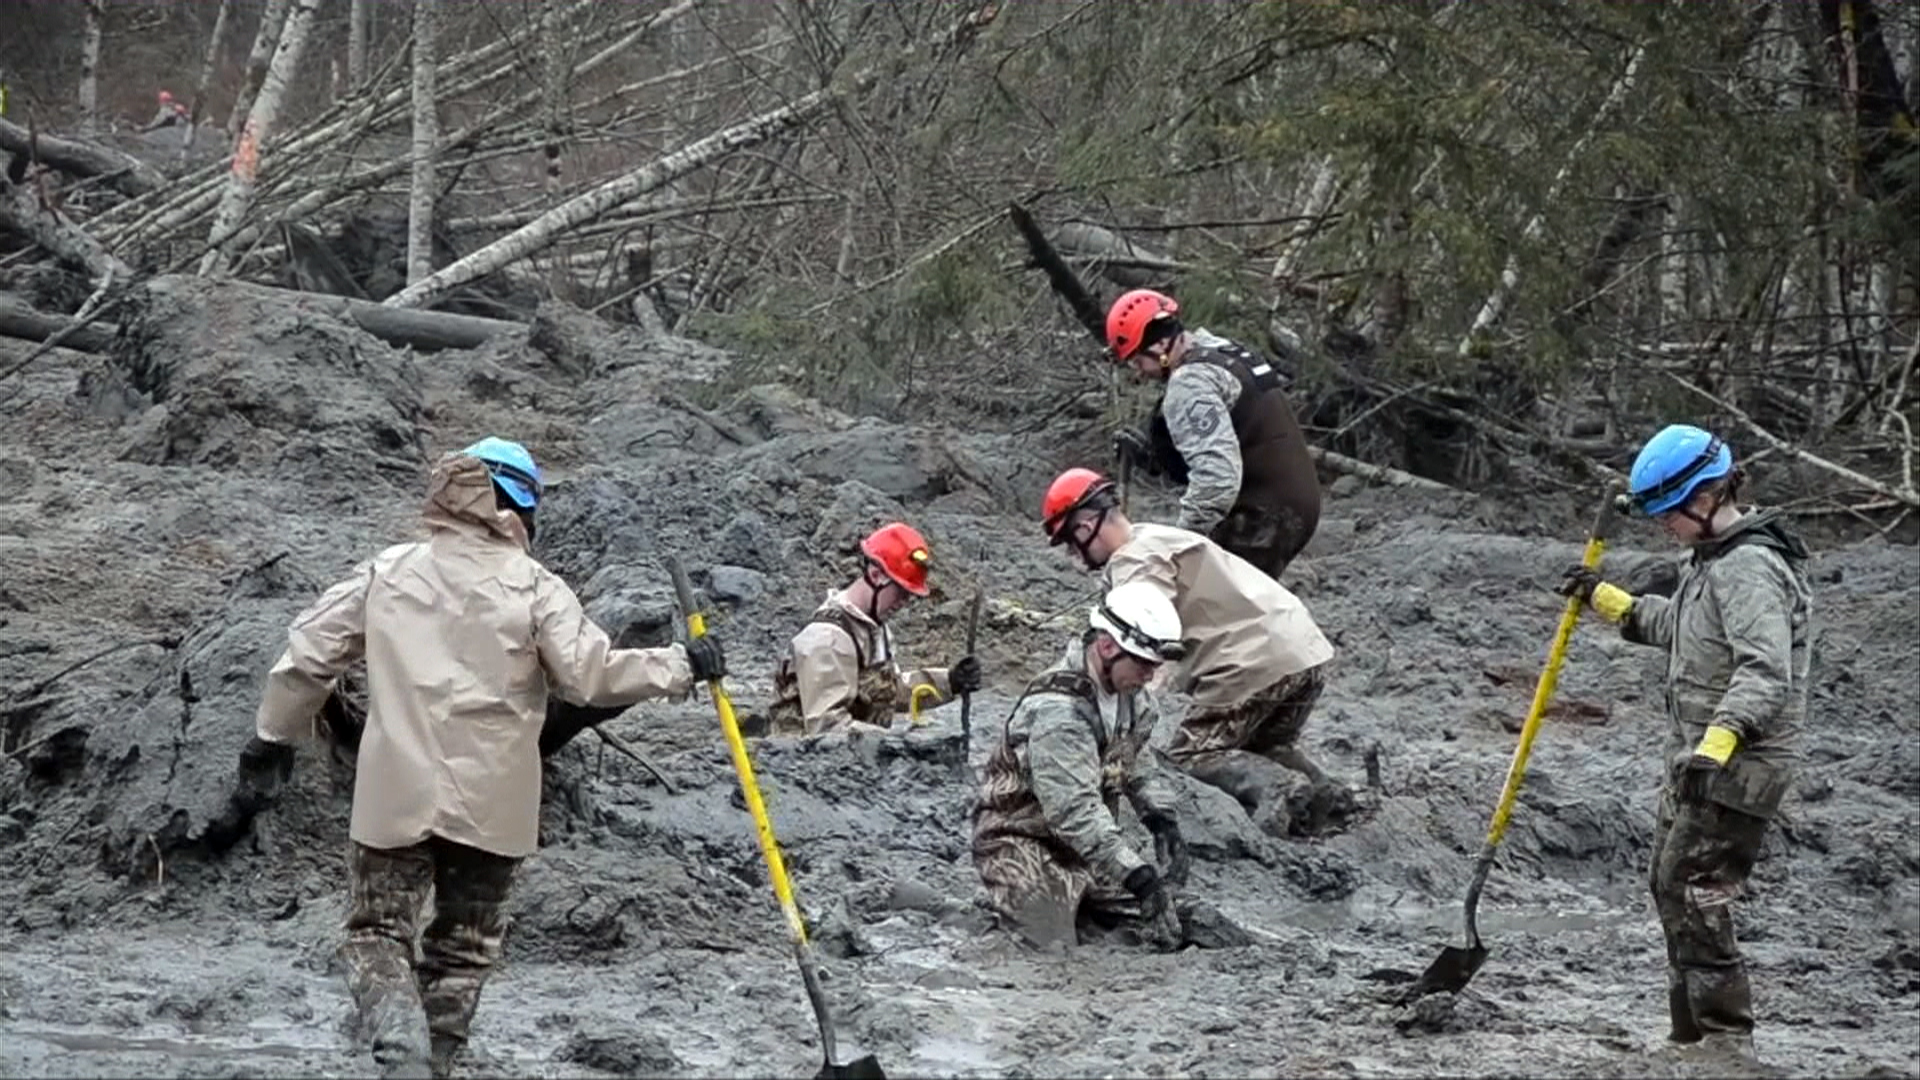 Double-Barreled Blow: How the Oso Mudslide Went Down